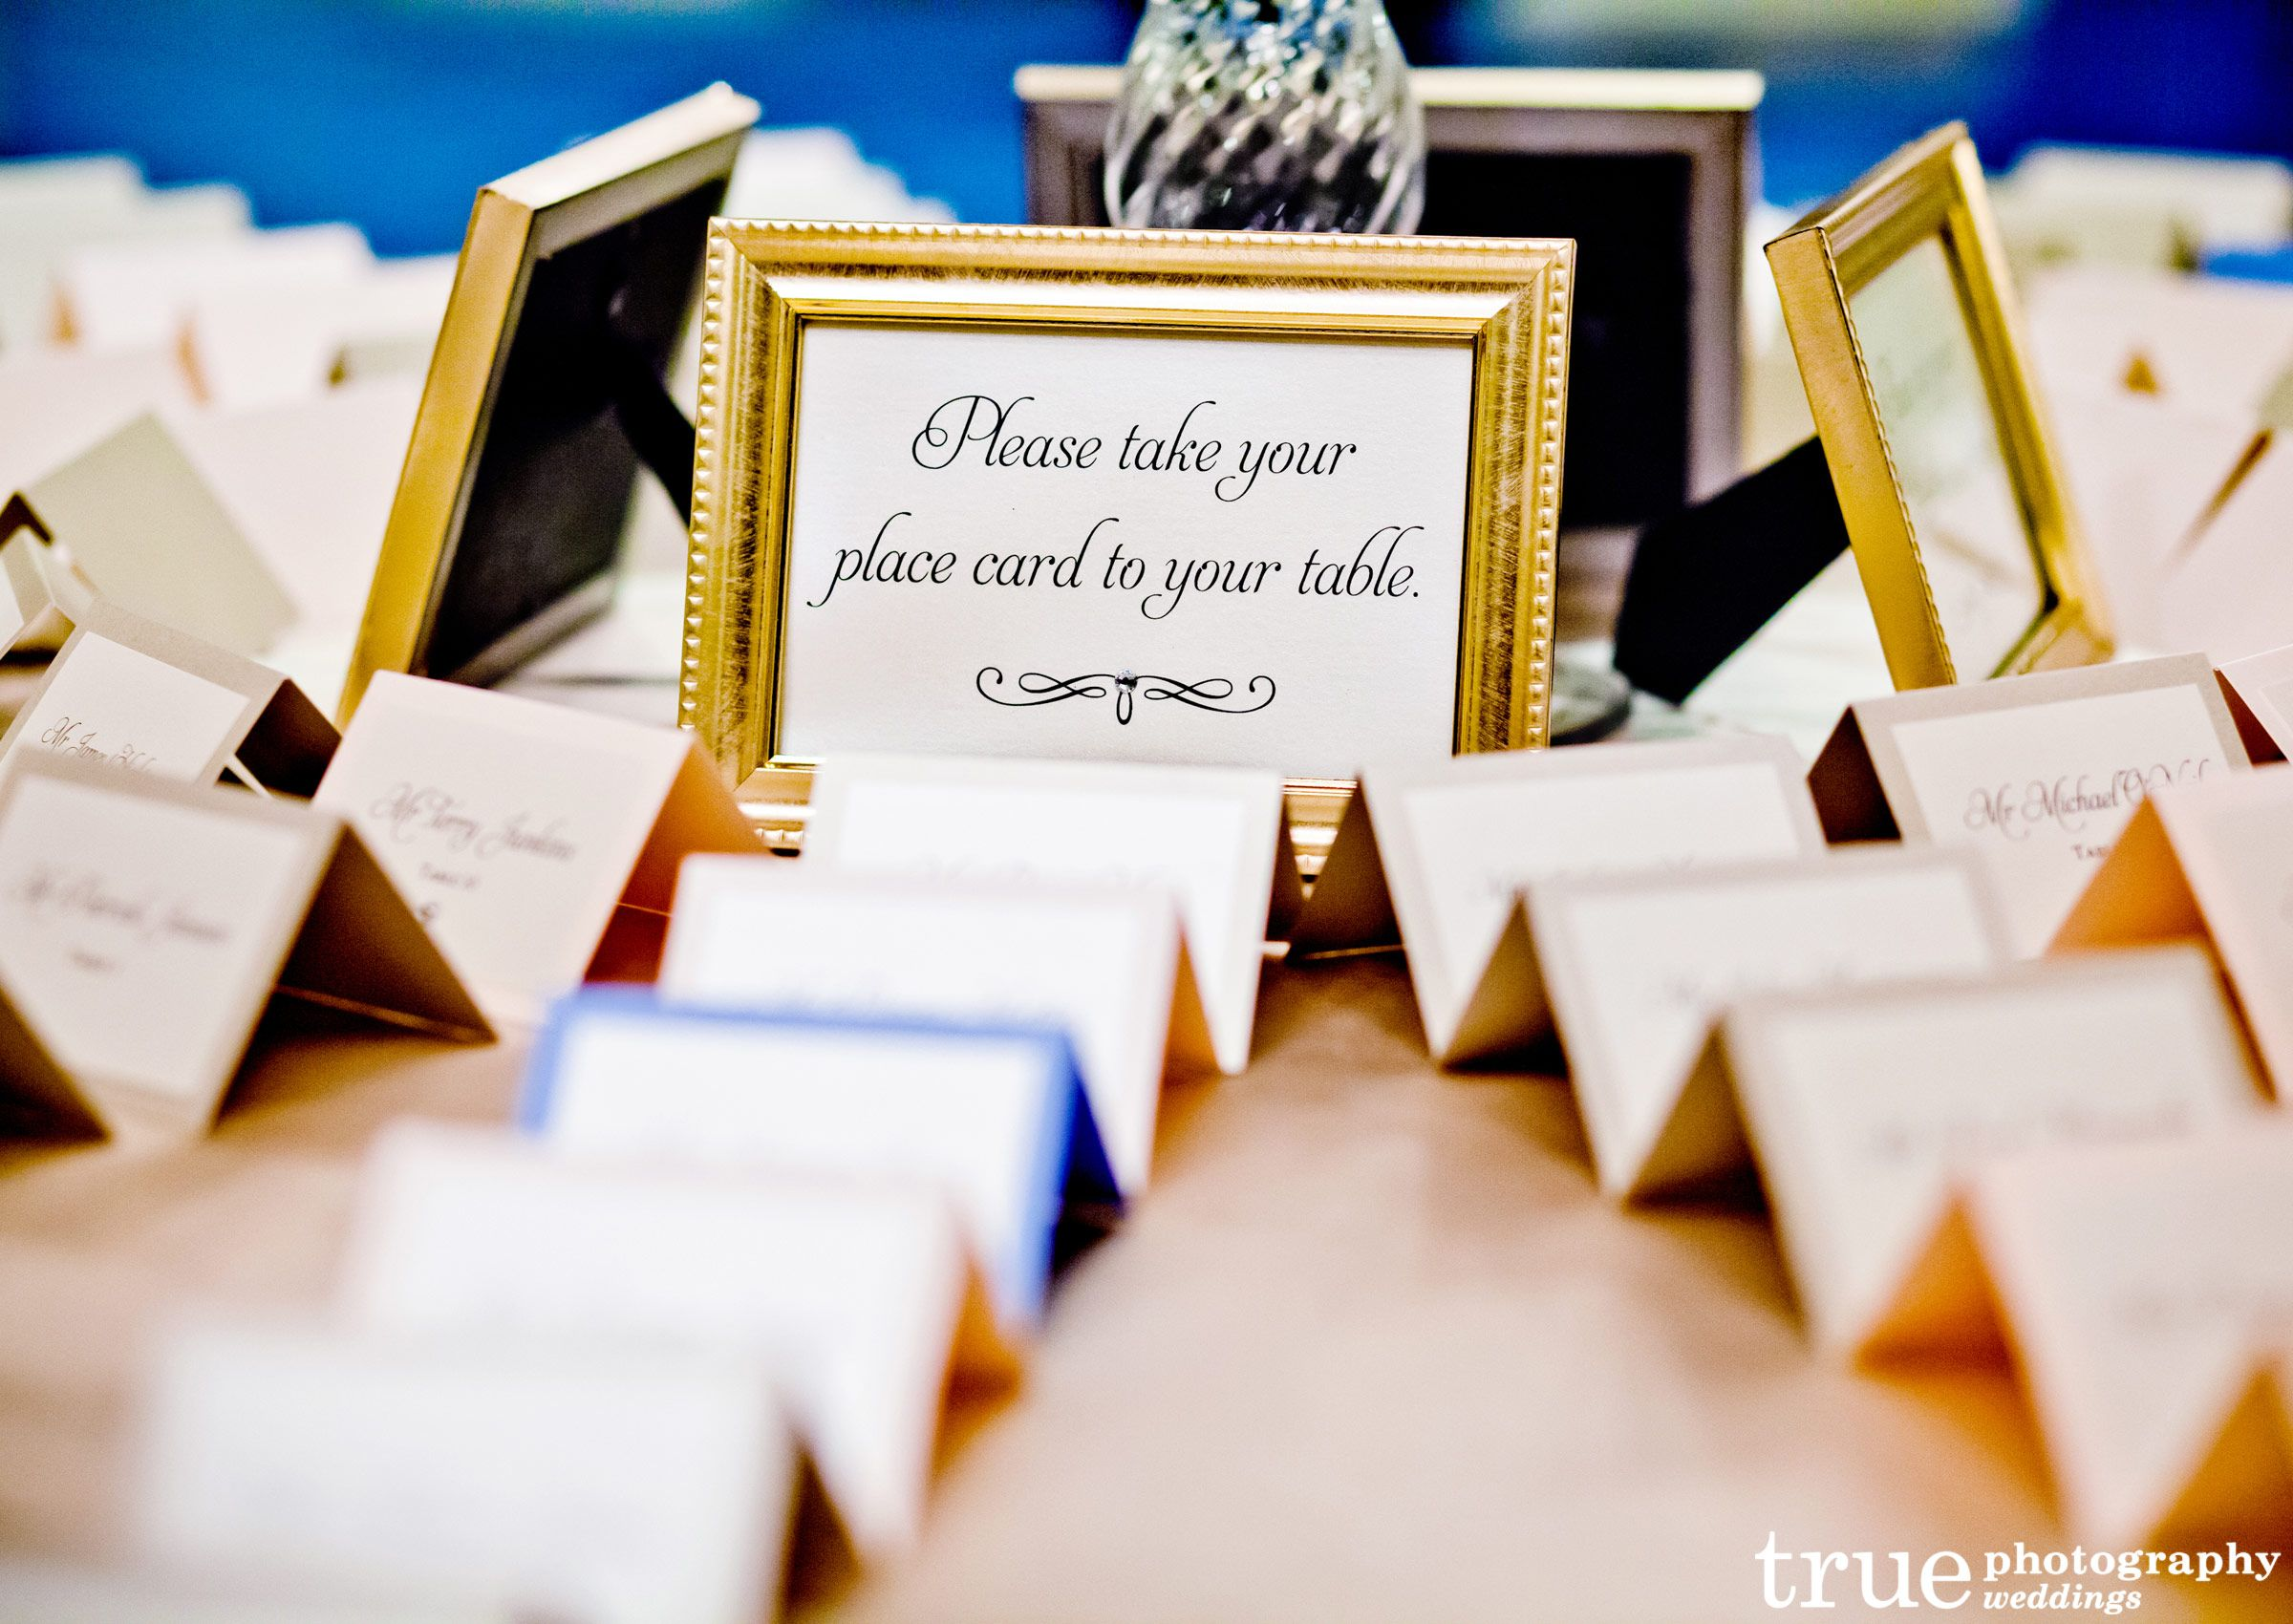 t-creative-wedding-reception-place-card-display-ideas-wedding-place ...